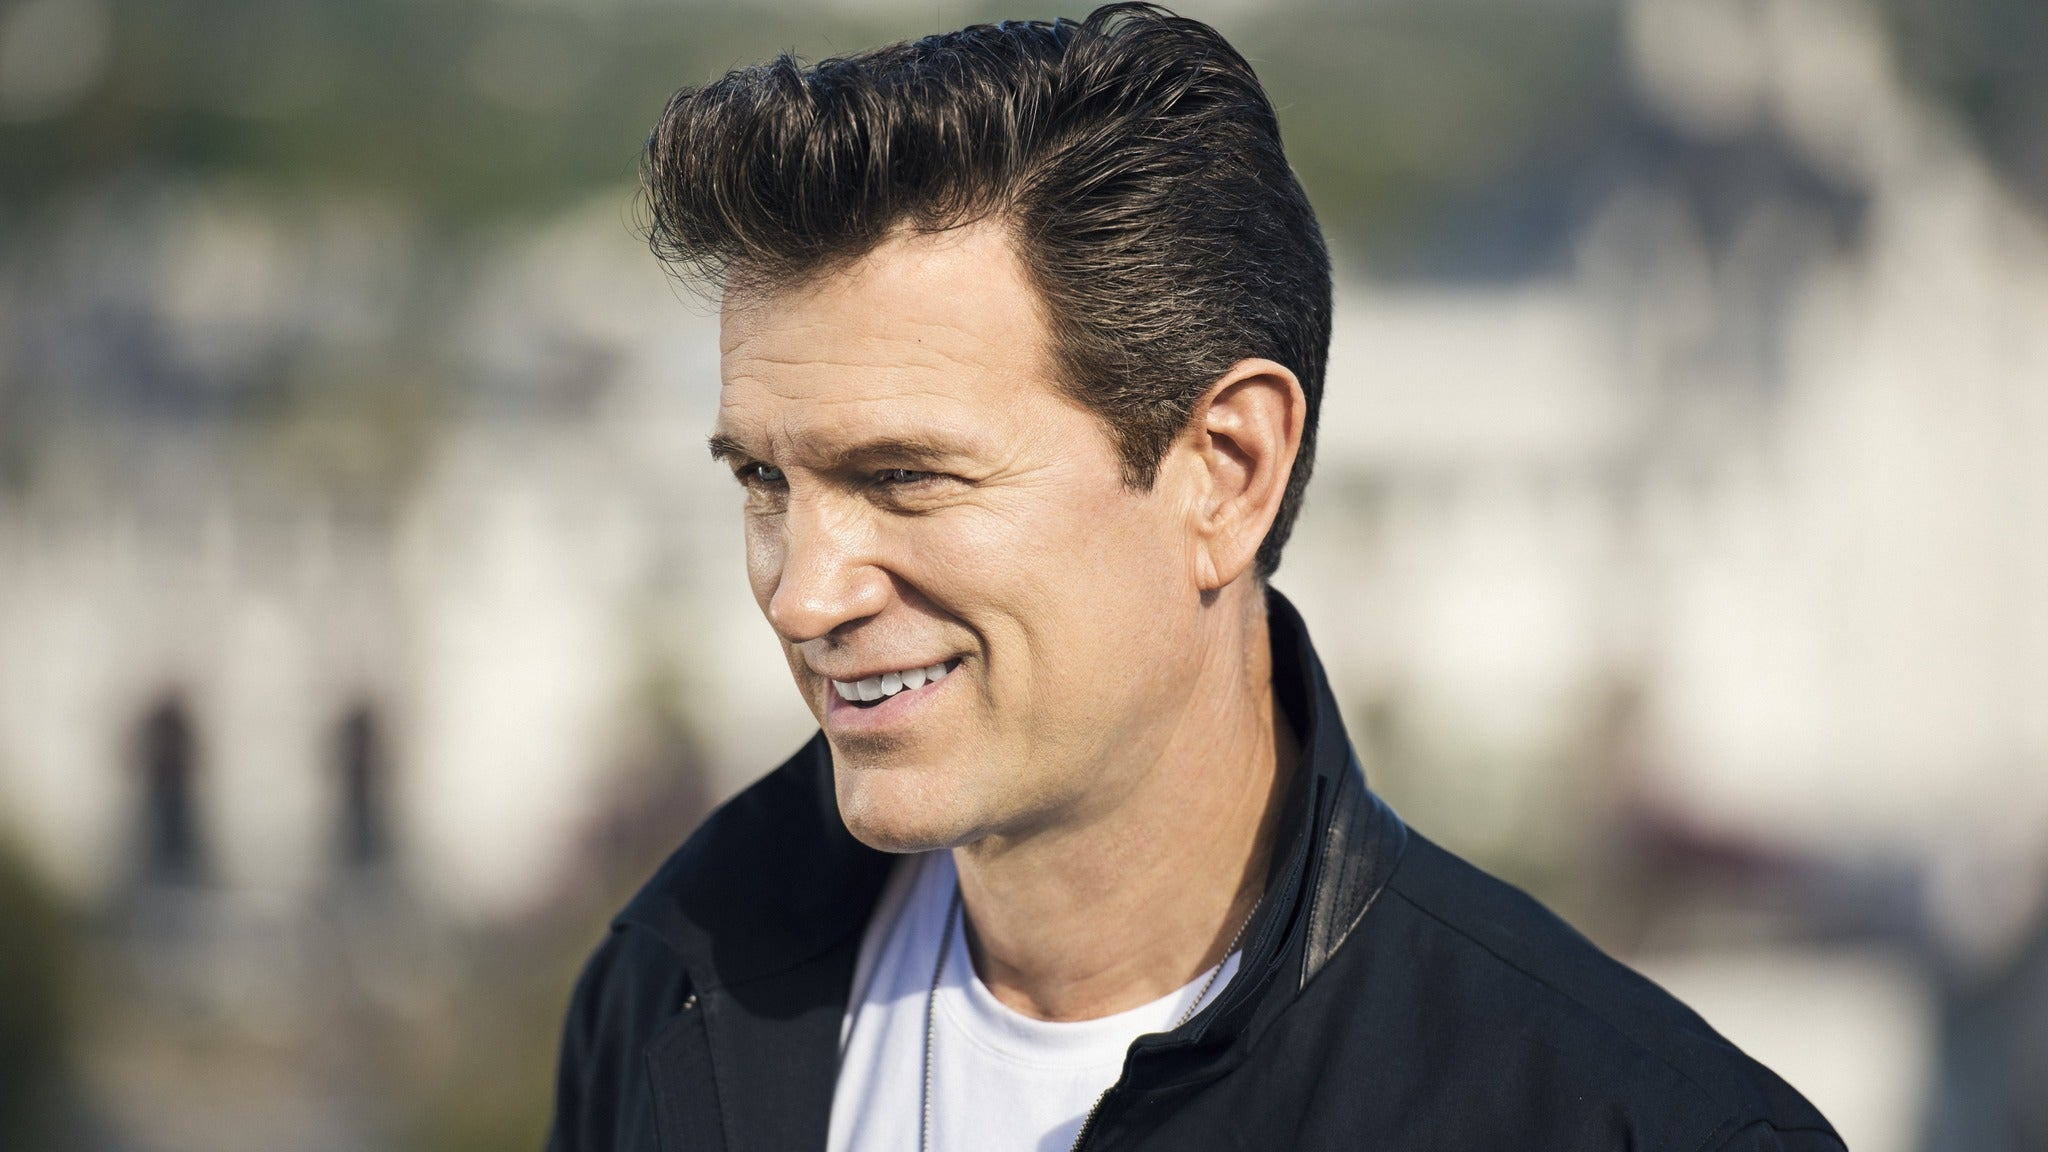 Chris Isaak at Saban Theatre